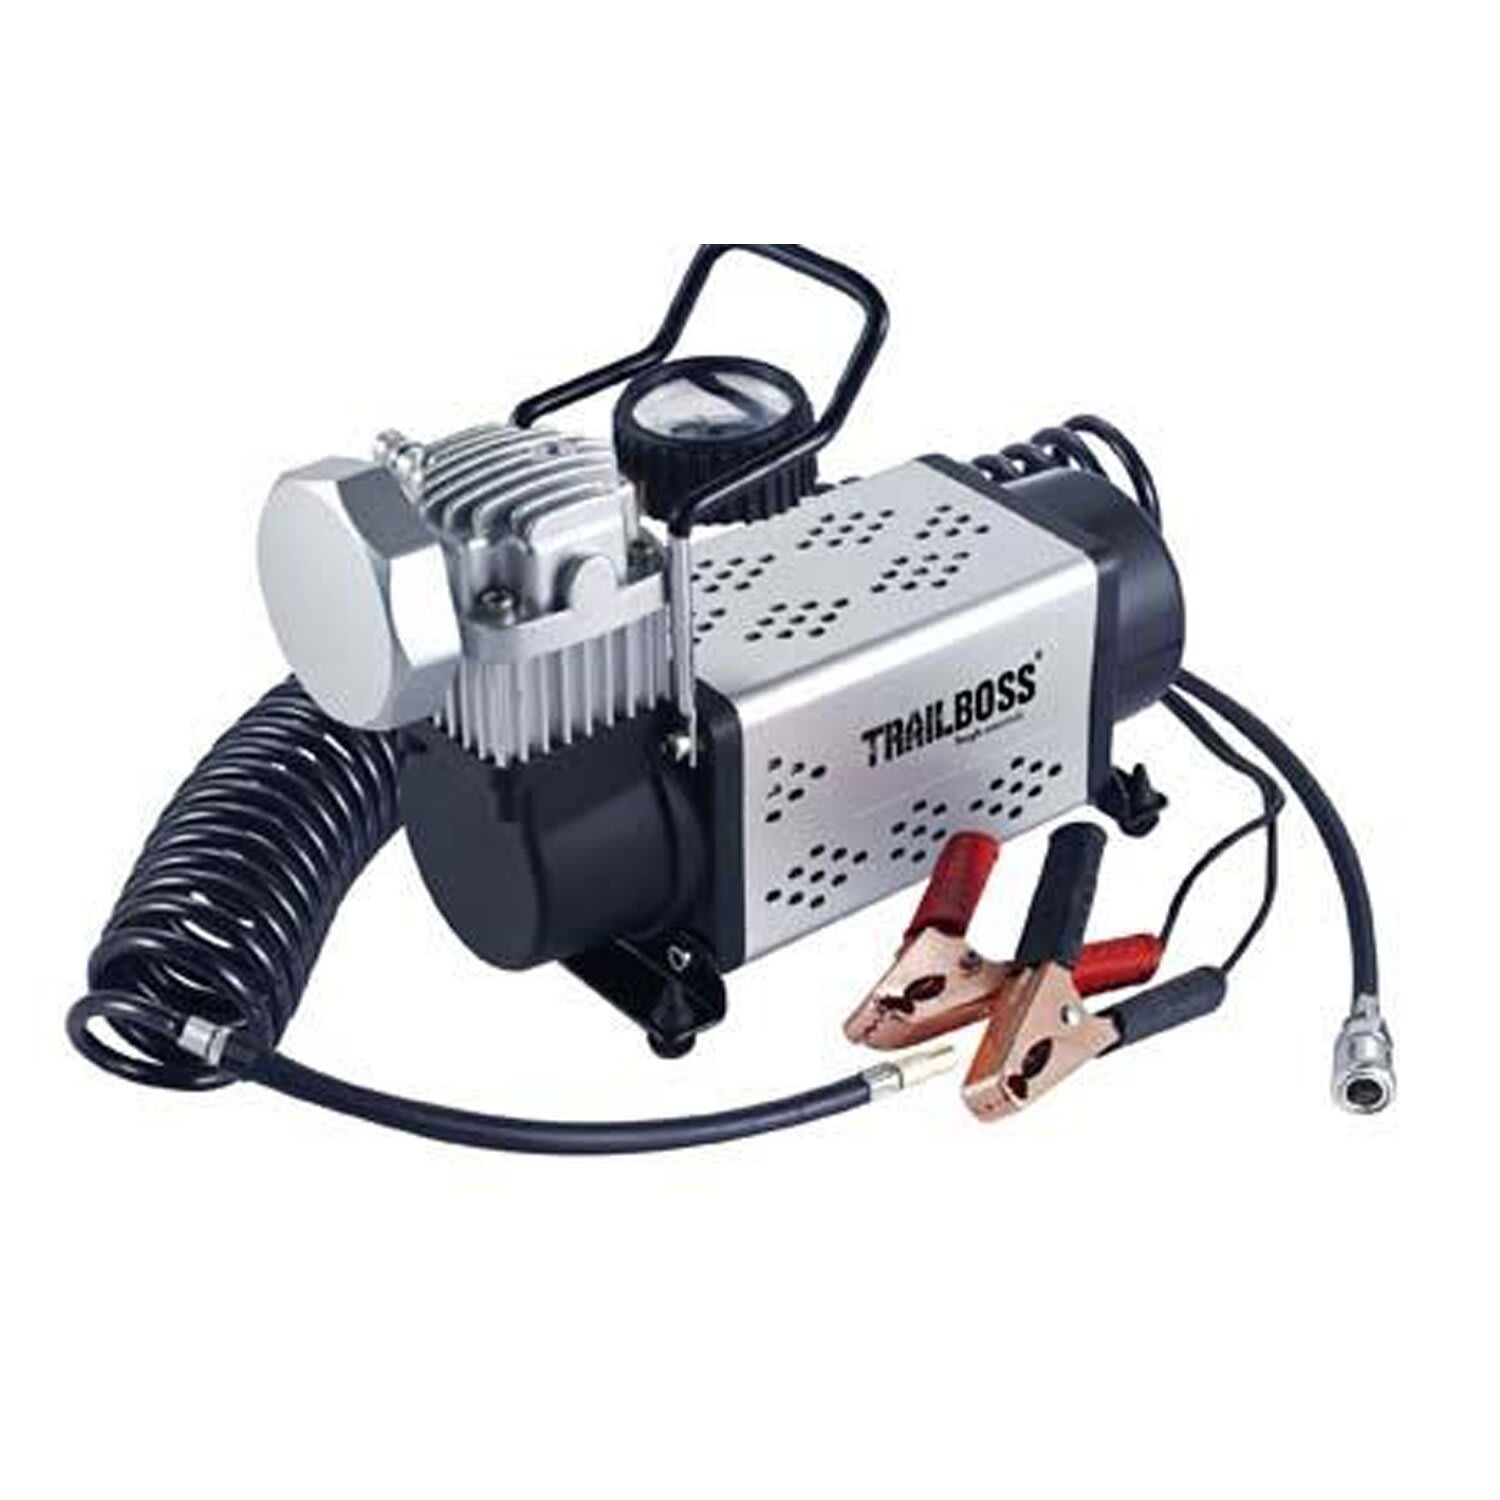 TrailBoss 72L Compressor